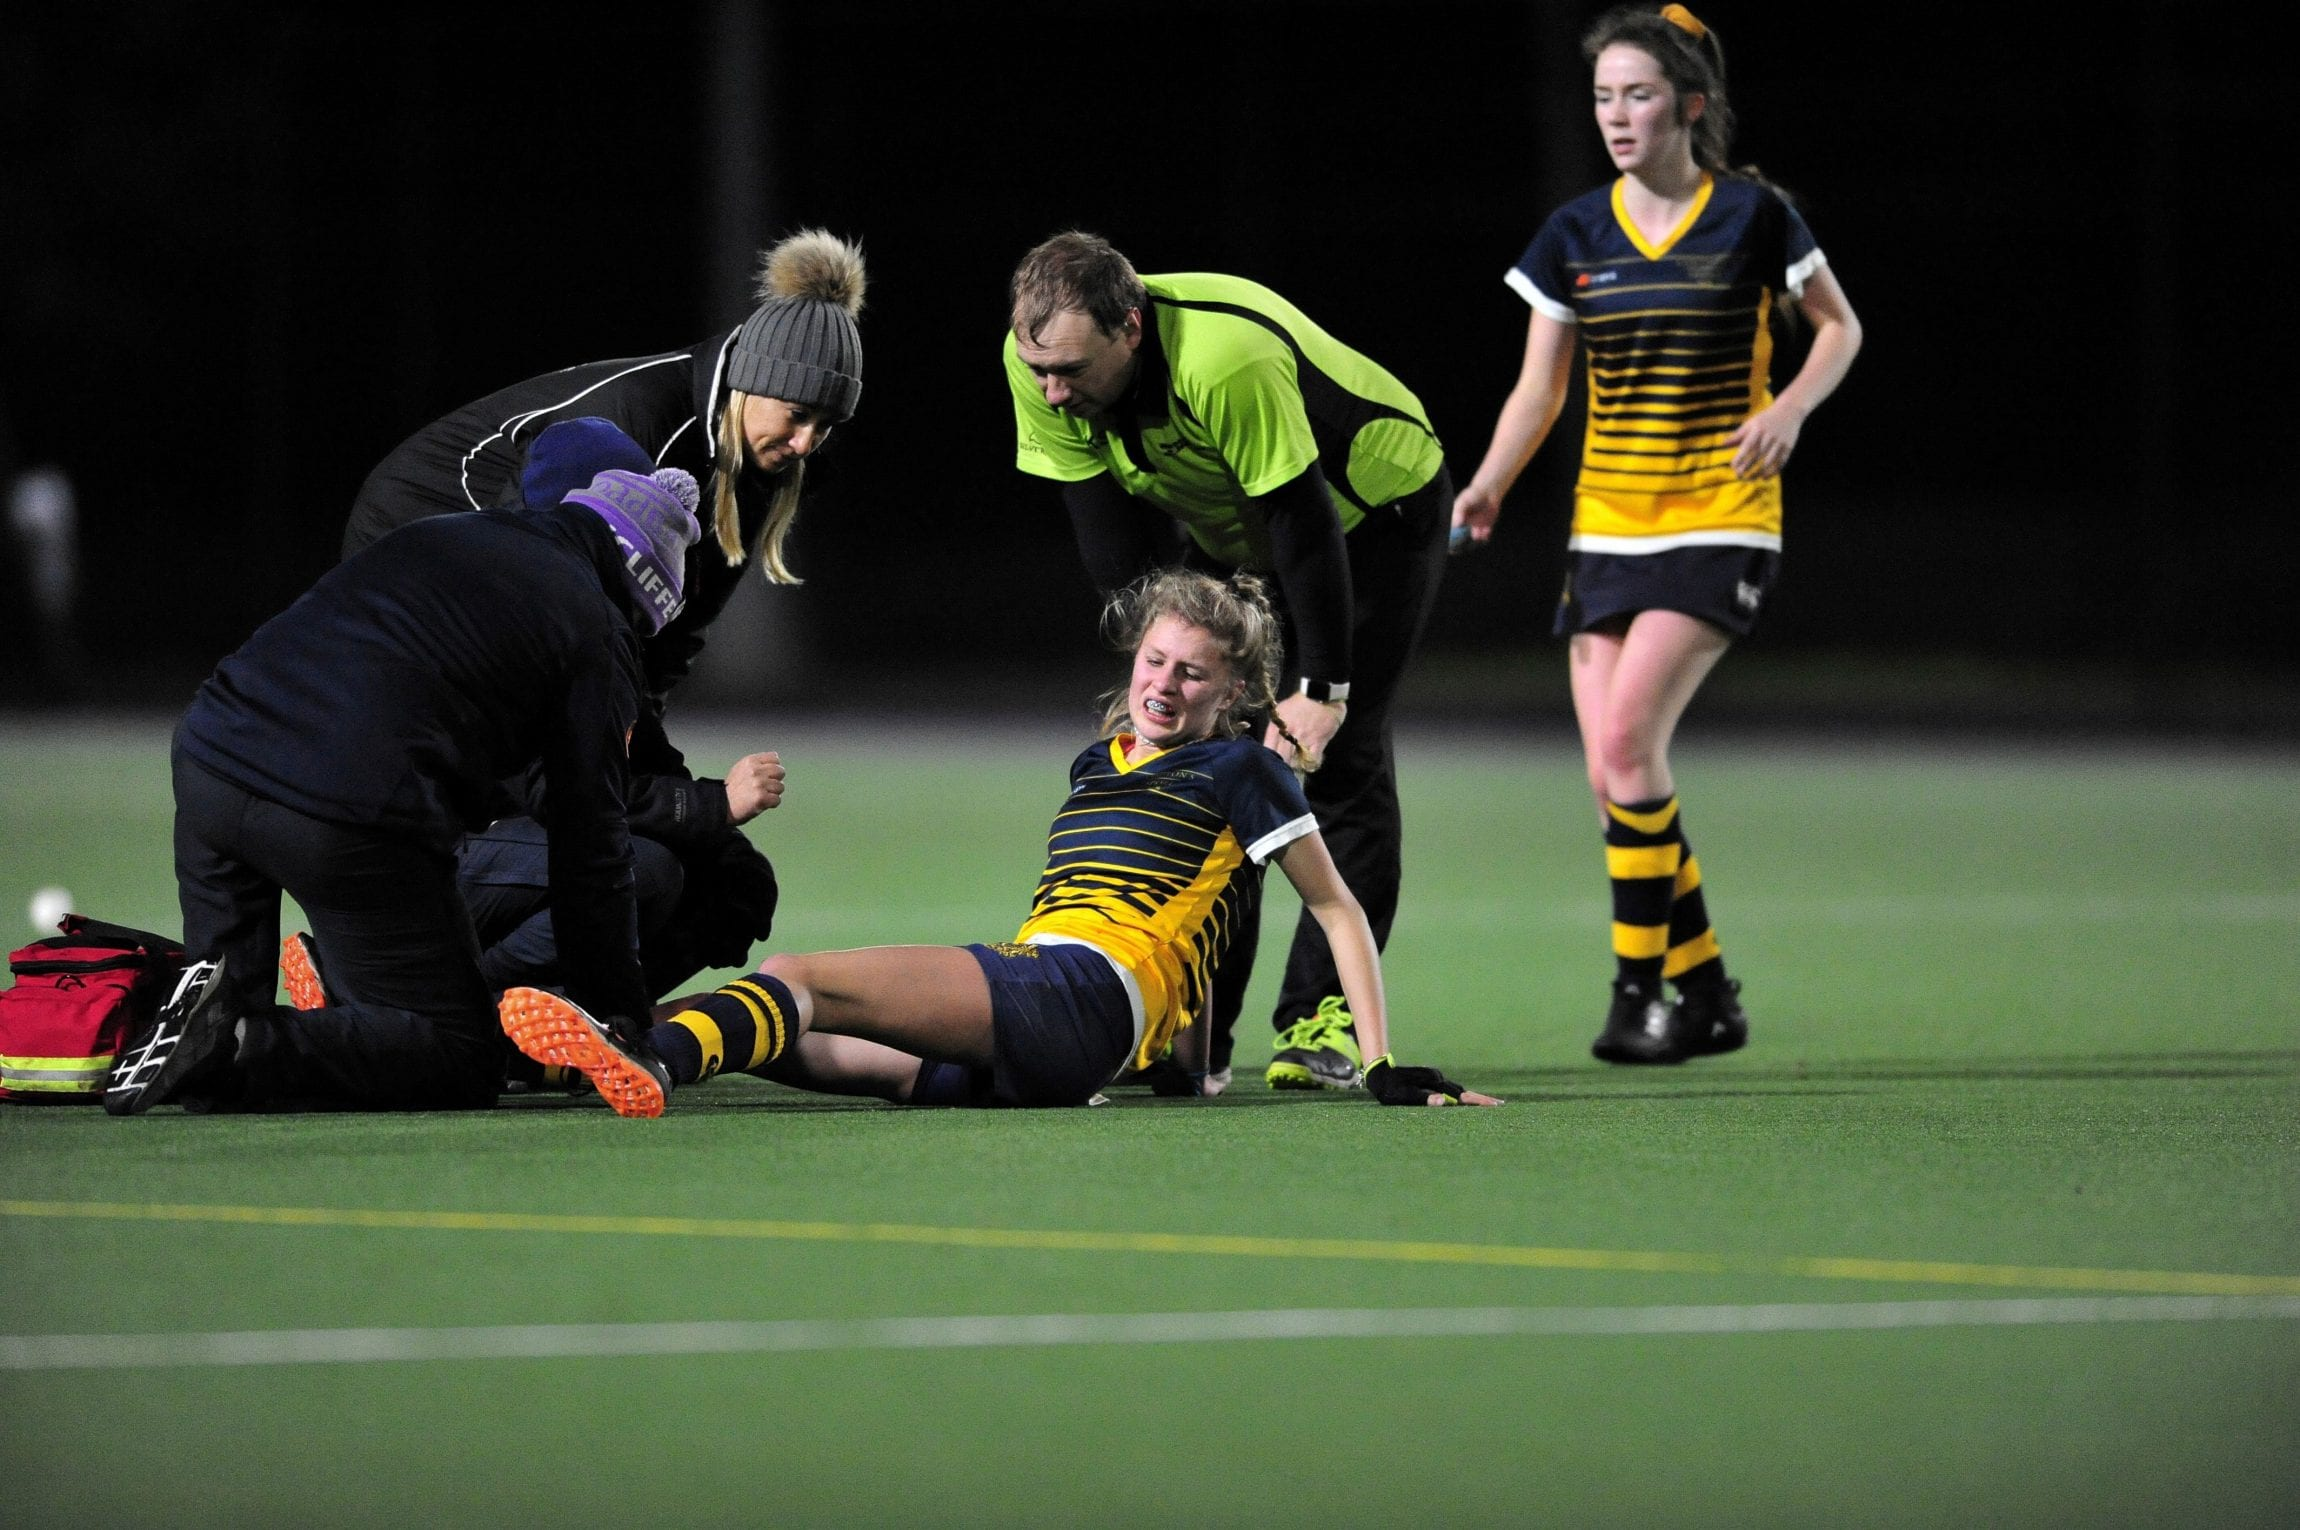 Sports Injury Treatment The Prime Practice Pitchside First Aid